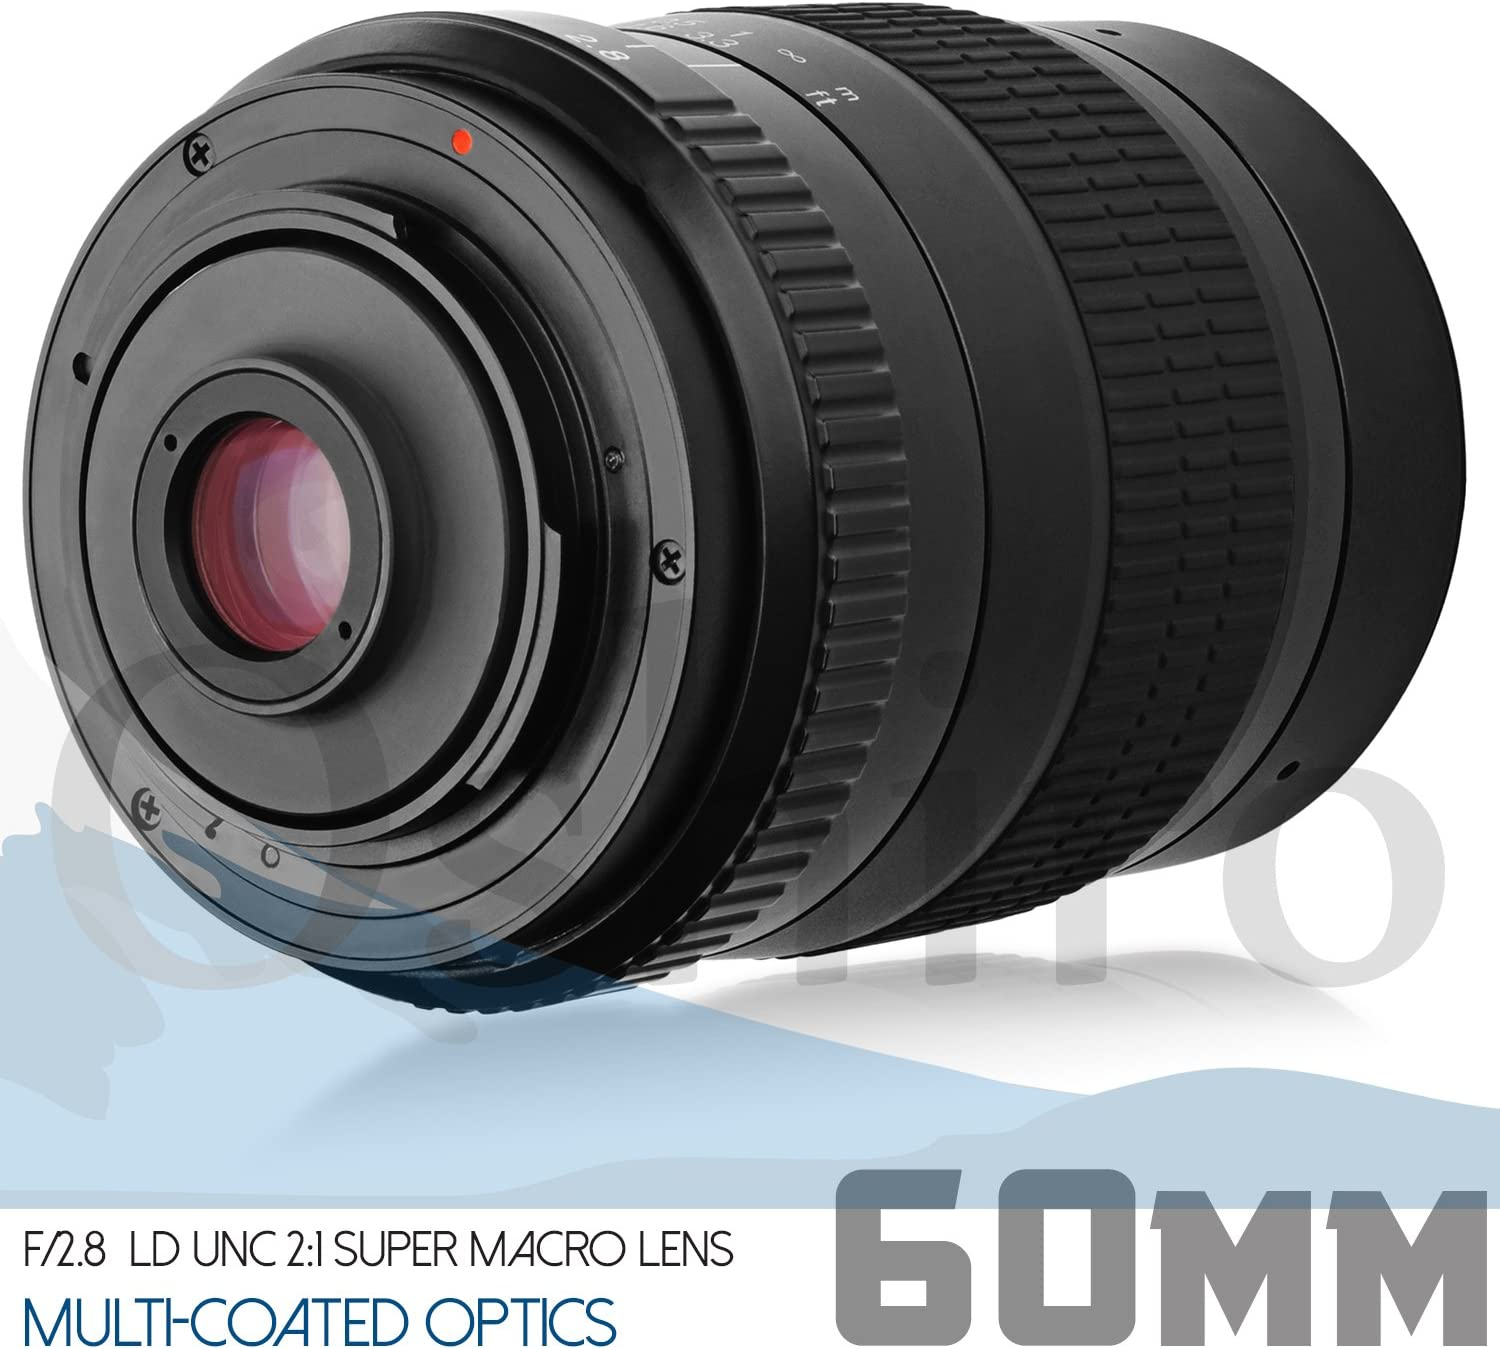 7 Items Oshiro 60mm f//2.8 2:1 LD UNC Full Frame Ultra-Macro Lens for Nikon DSLR Cameras Bundle with SanDisk Ultra 32GB SDHC SDXC SD Class 10 48MB//s 320x Memory Card and Accessories